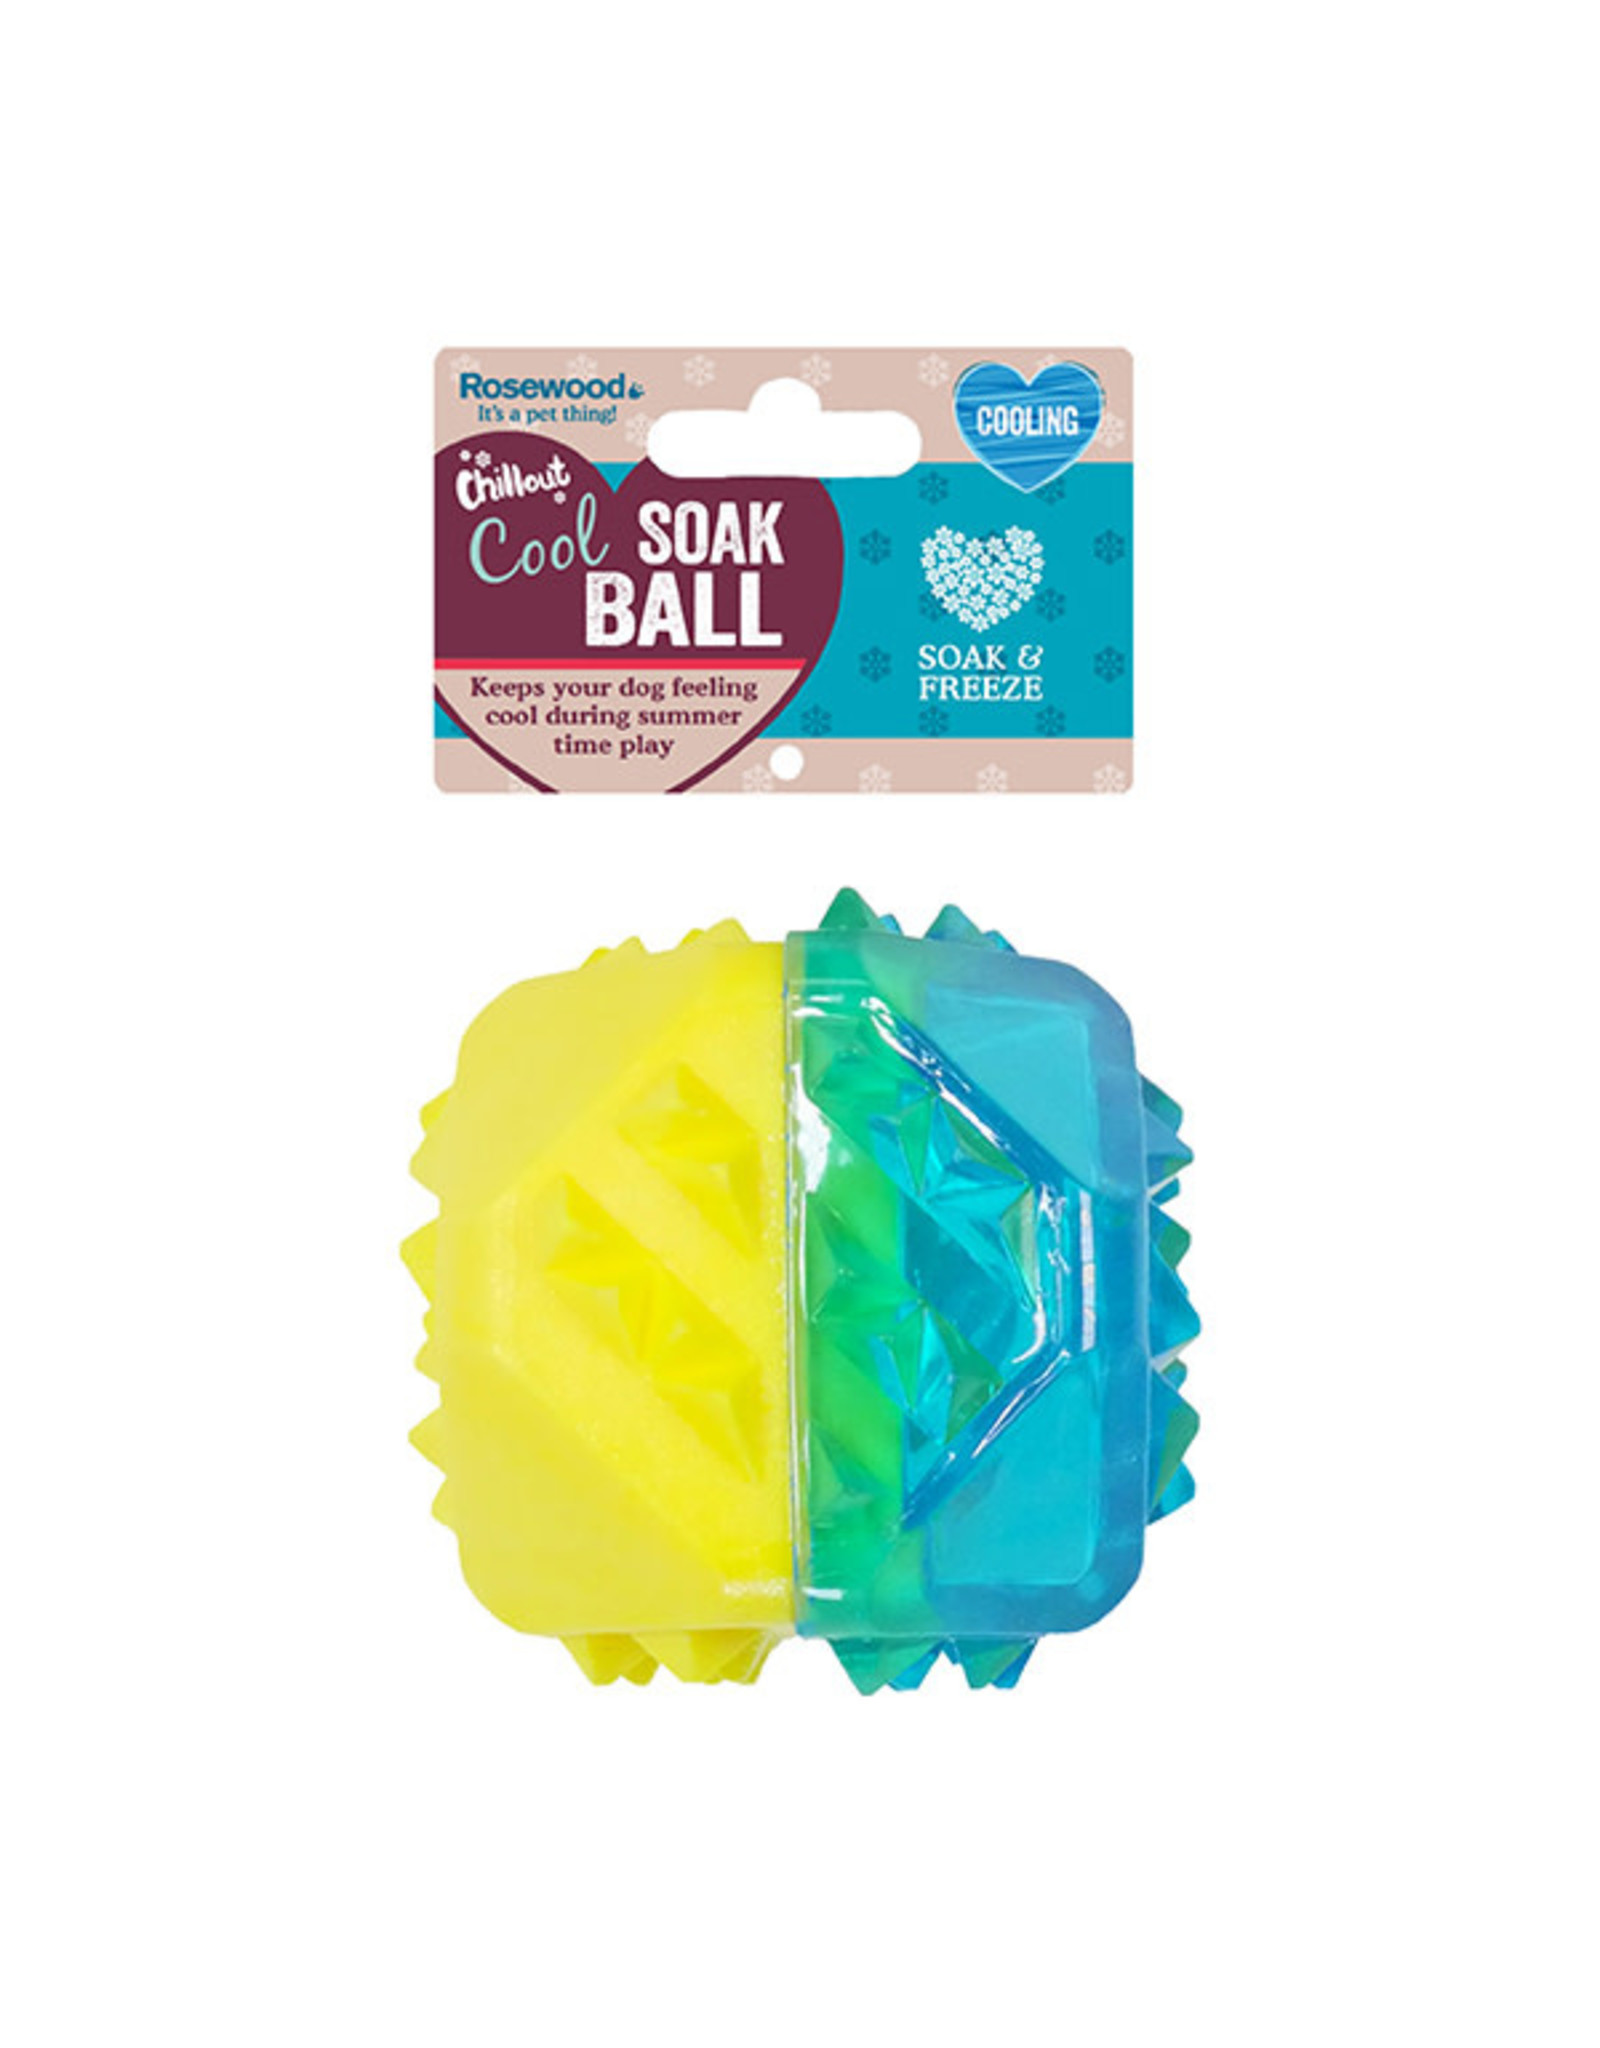 Rosewood Chillax Cool Soak Ball Dog Toy